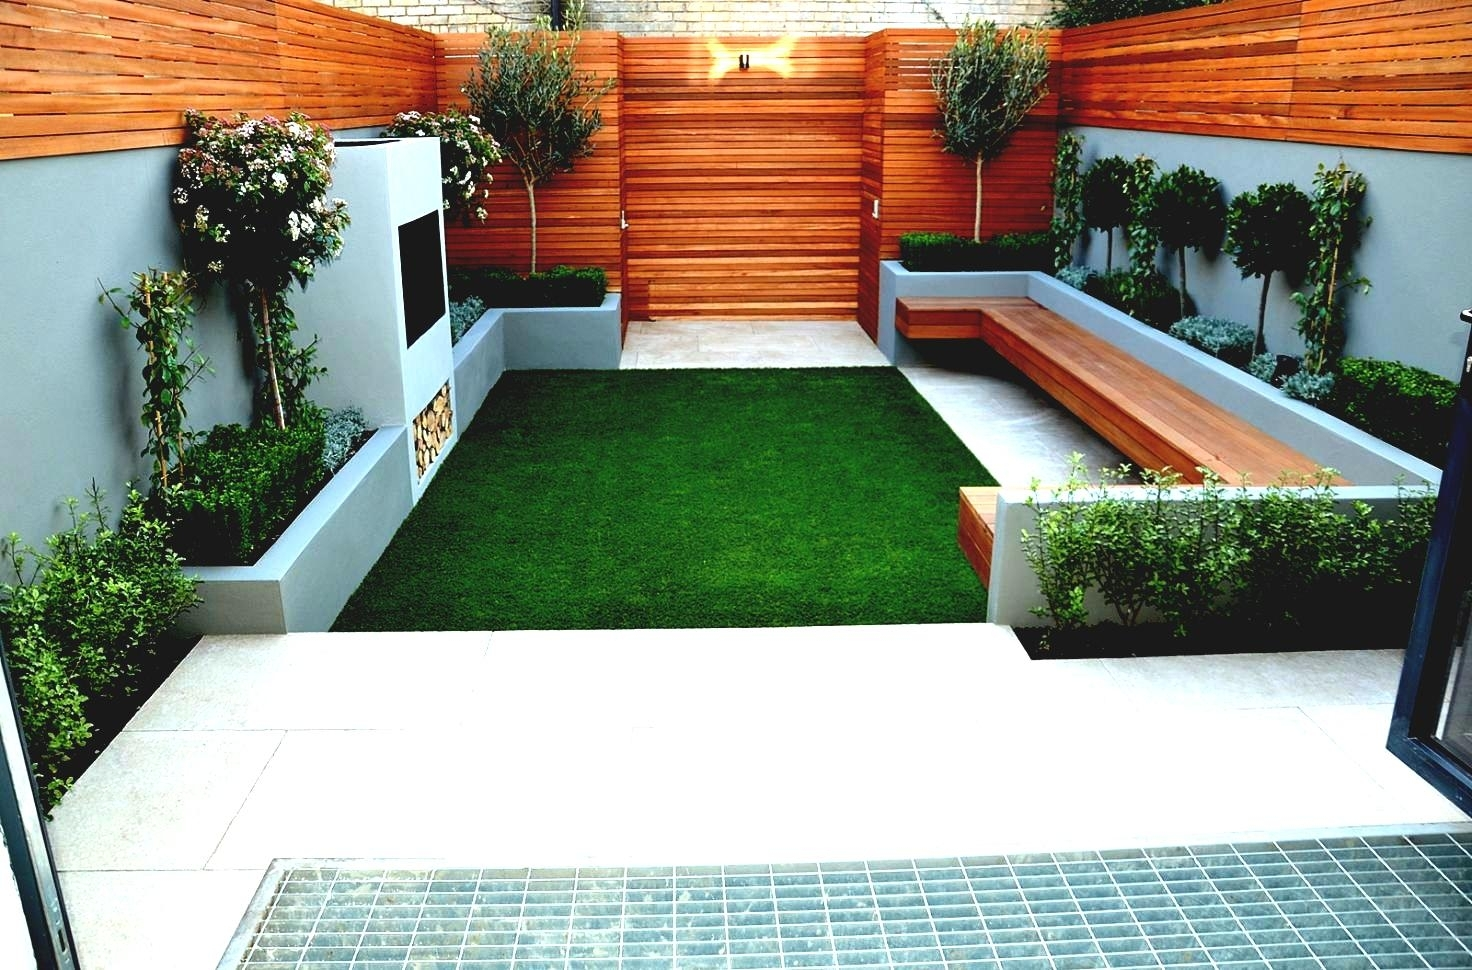 Paving ideas for small back gardens garden design for Small back garden ideas